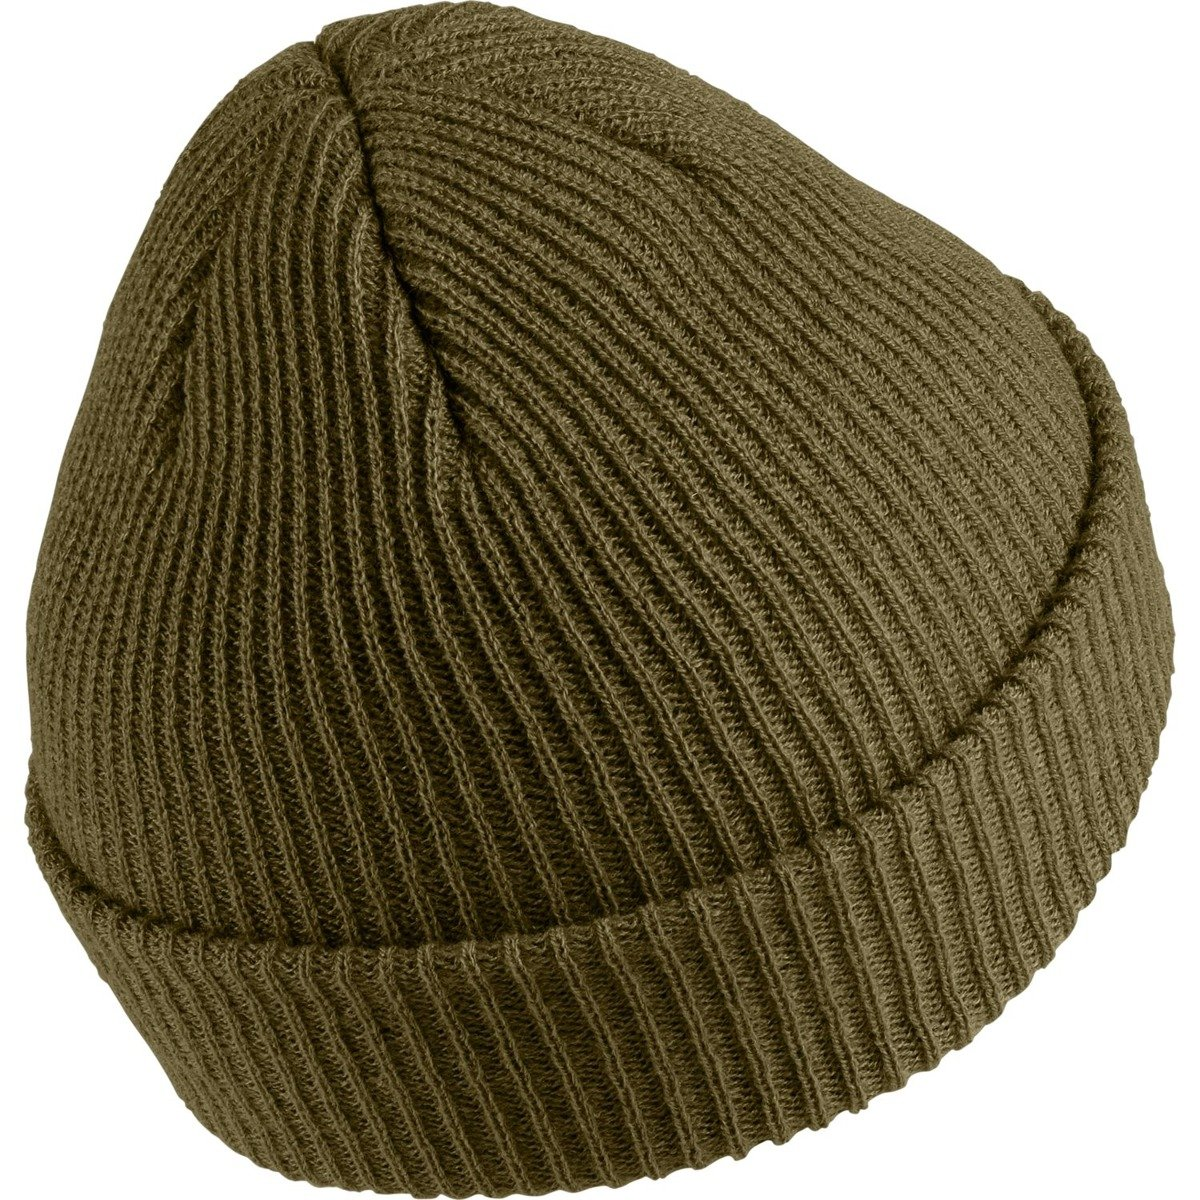 finest selection 1148c c6c9d ... nike sb fisherman beanie Olive Flak sequoia Click to zoom